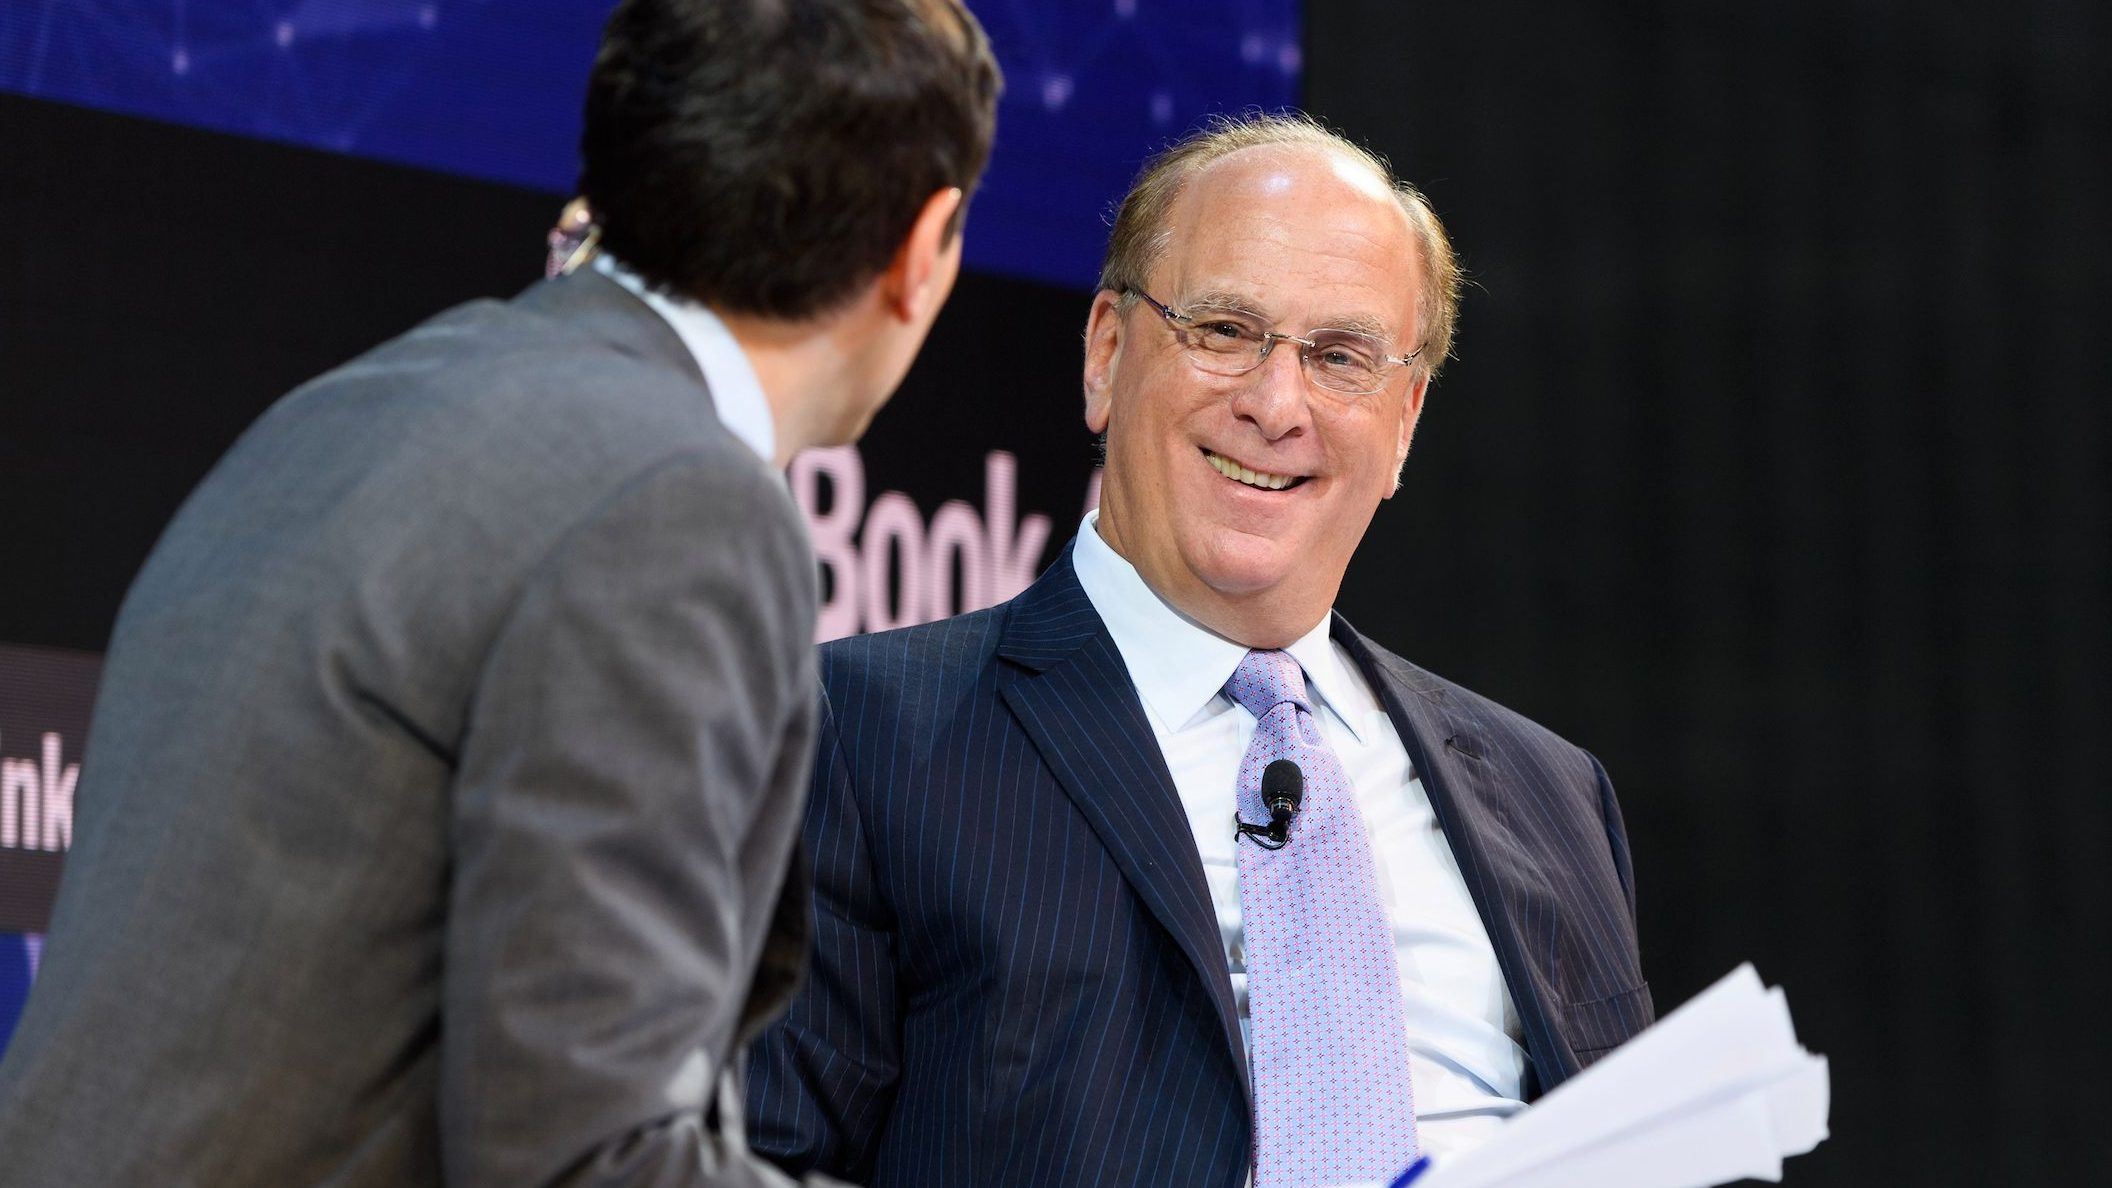 New York Times journalist Andrew Ross Sorkin interviews Larry Fink, CEO of BlackRock at the DealBook Conference, 2018